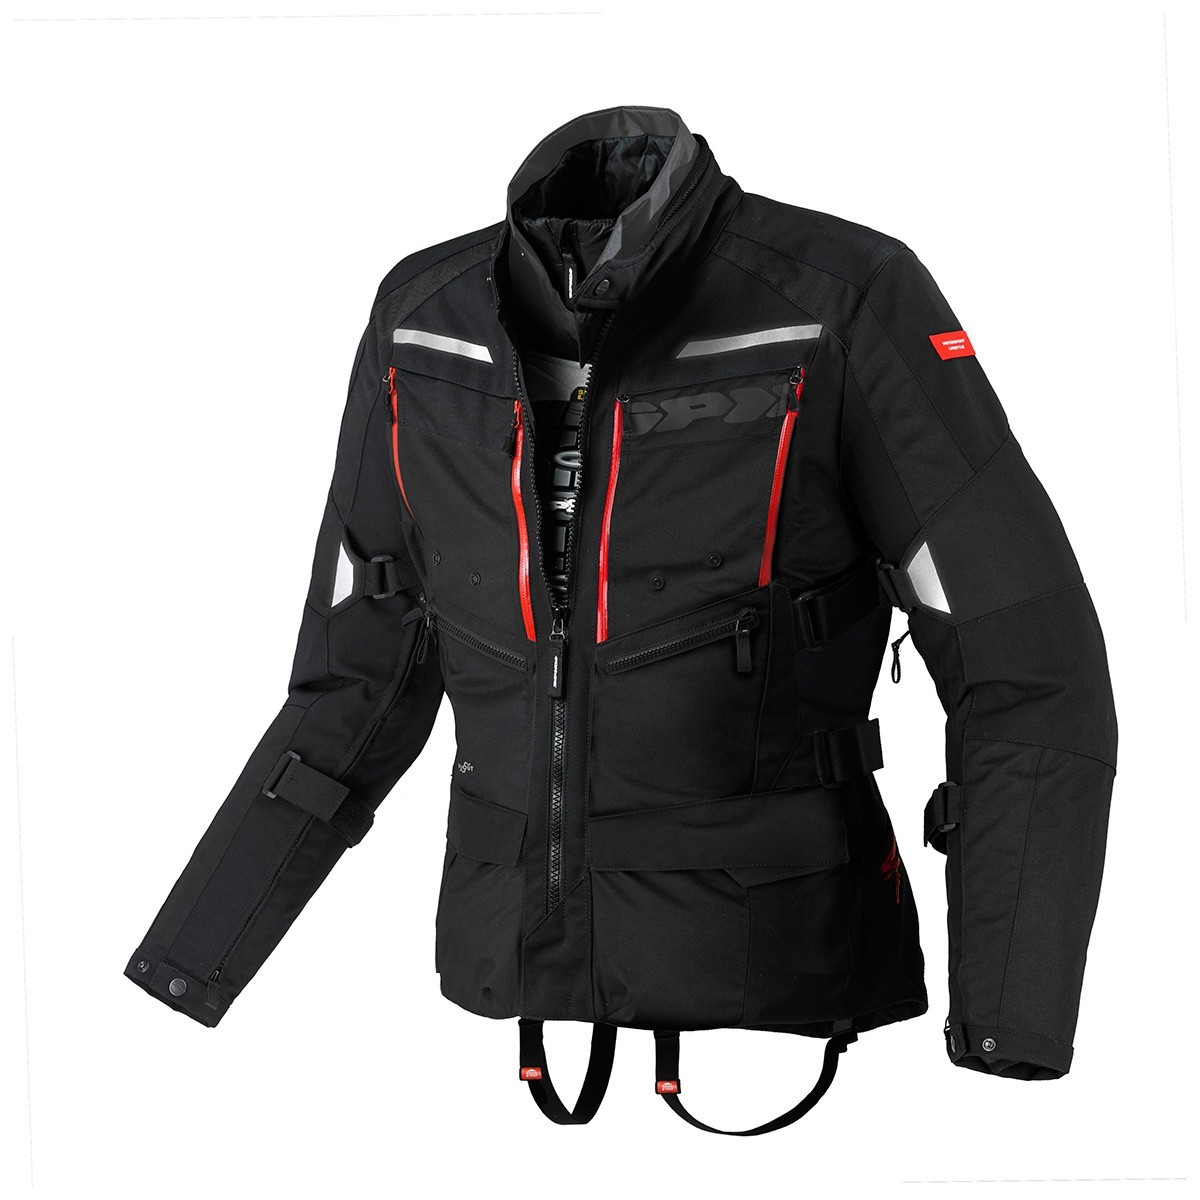 Jaqueta Spidi 4 Season Black H2Out  Respirável - Big Trail - SUPEROFERTA!